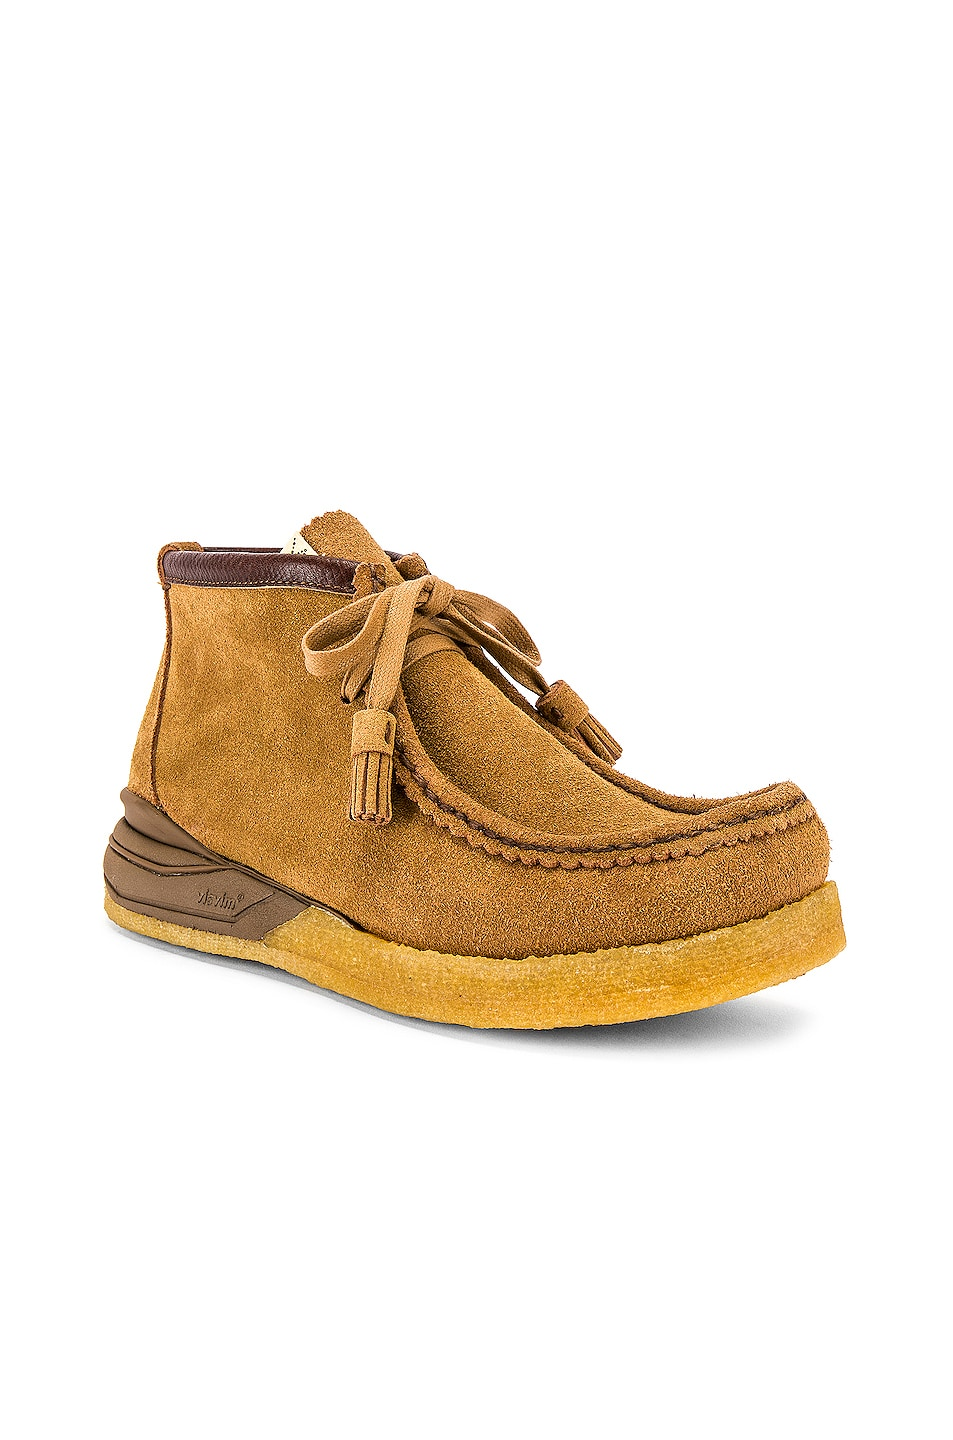 Image 1 of Visvim Sneaker Ankle Moccasin in Camel